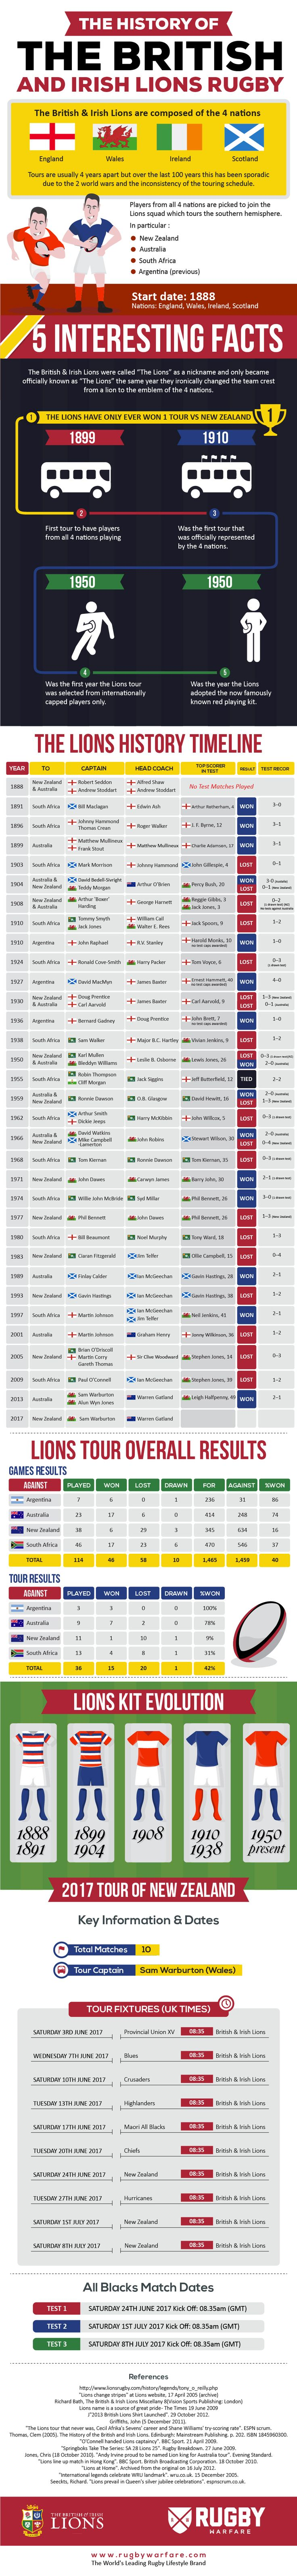 The complete history of the British & Irish Lions Rugby [Infographic]